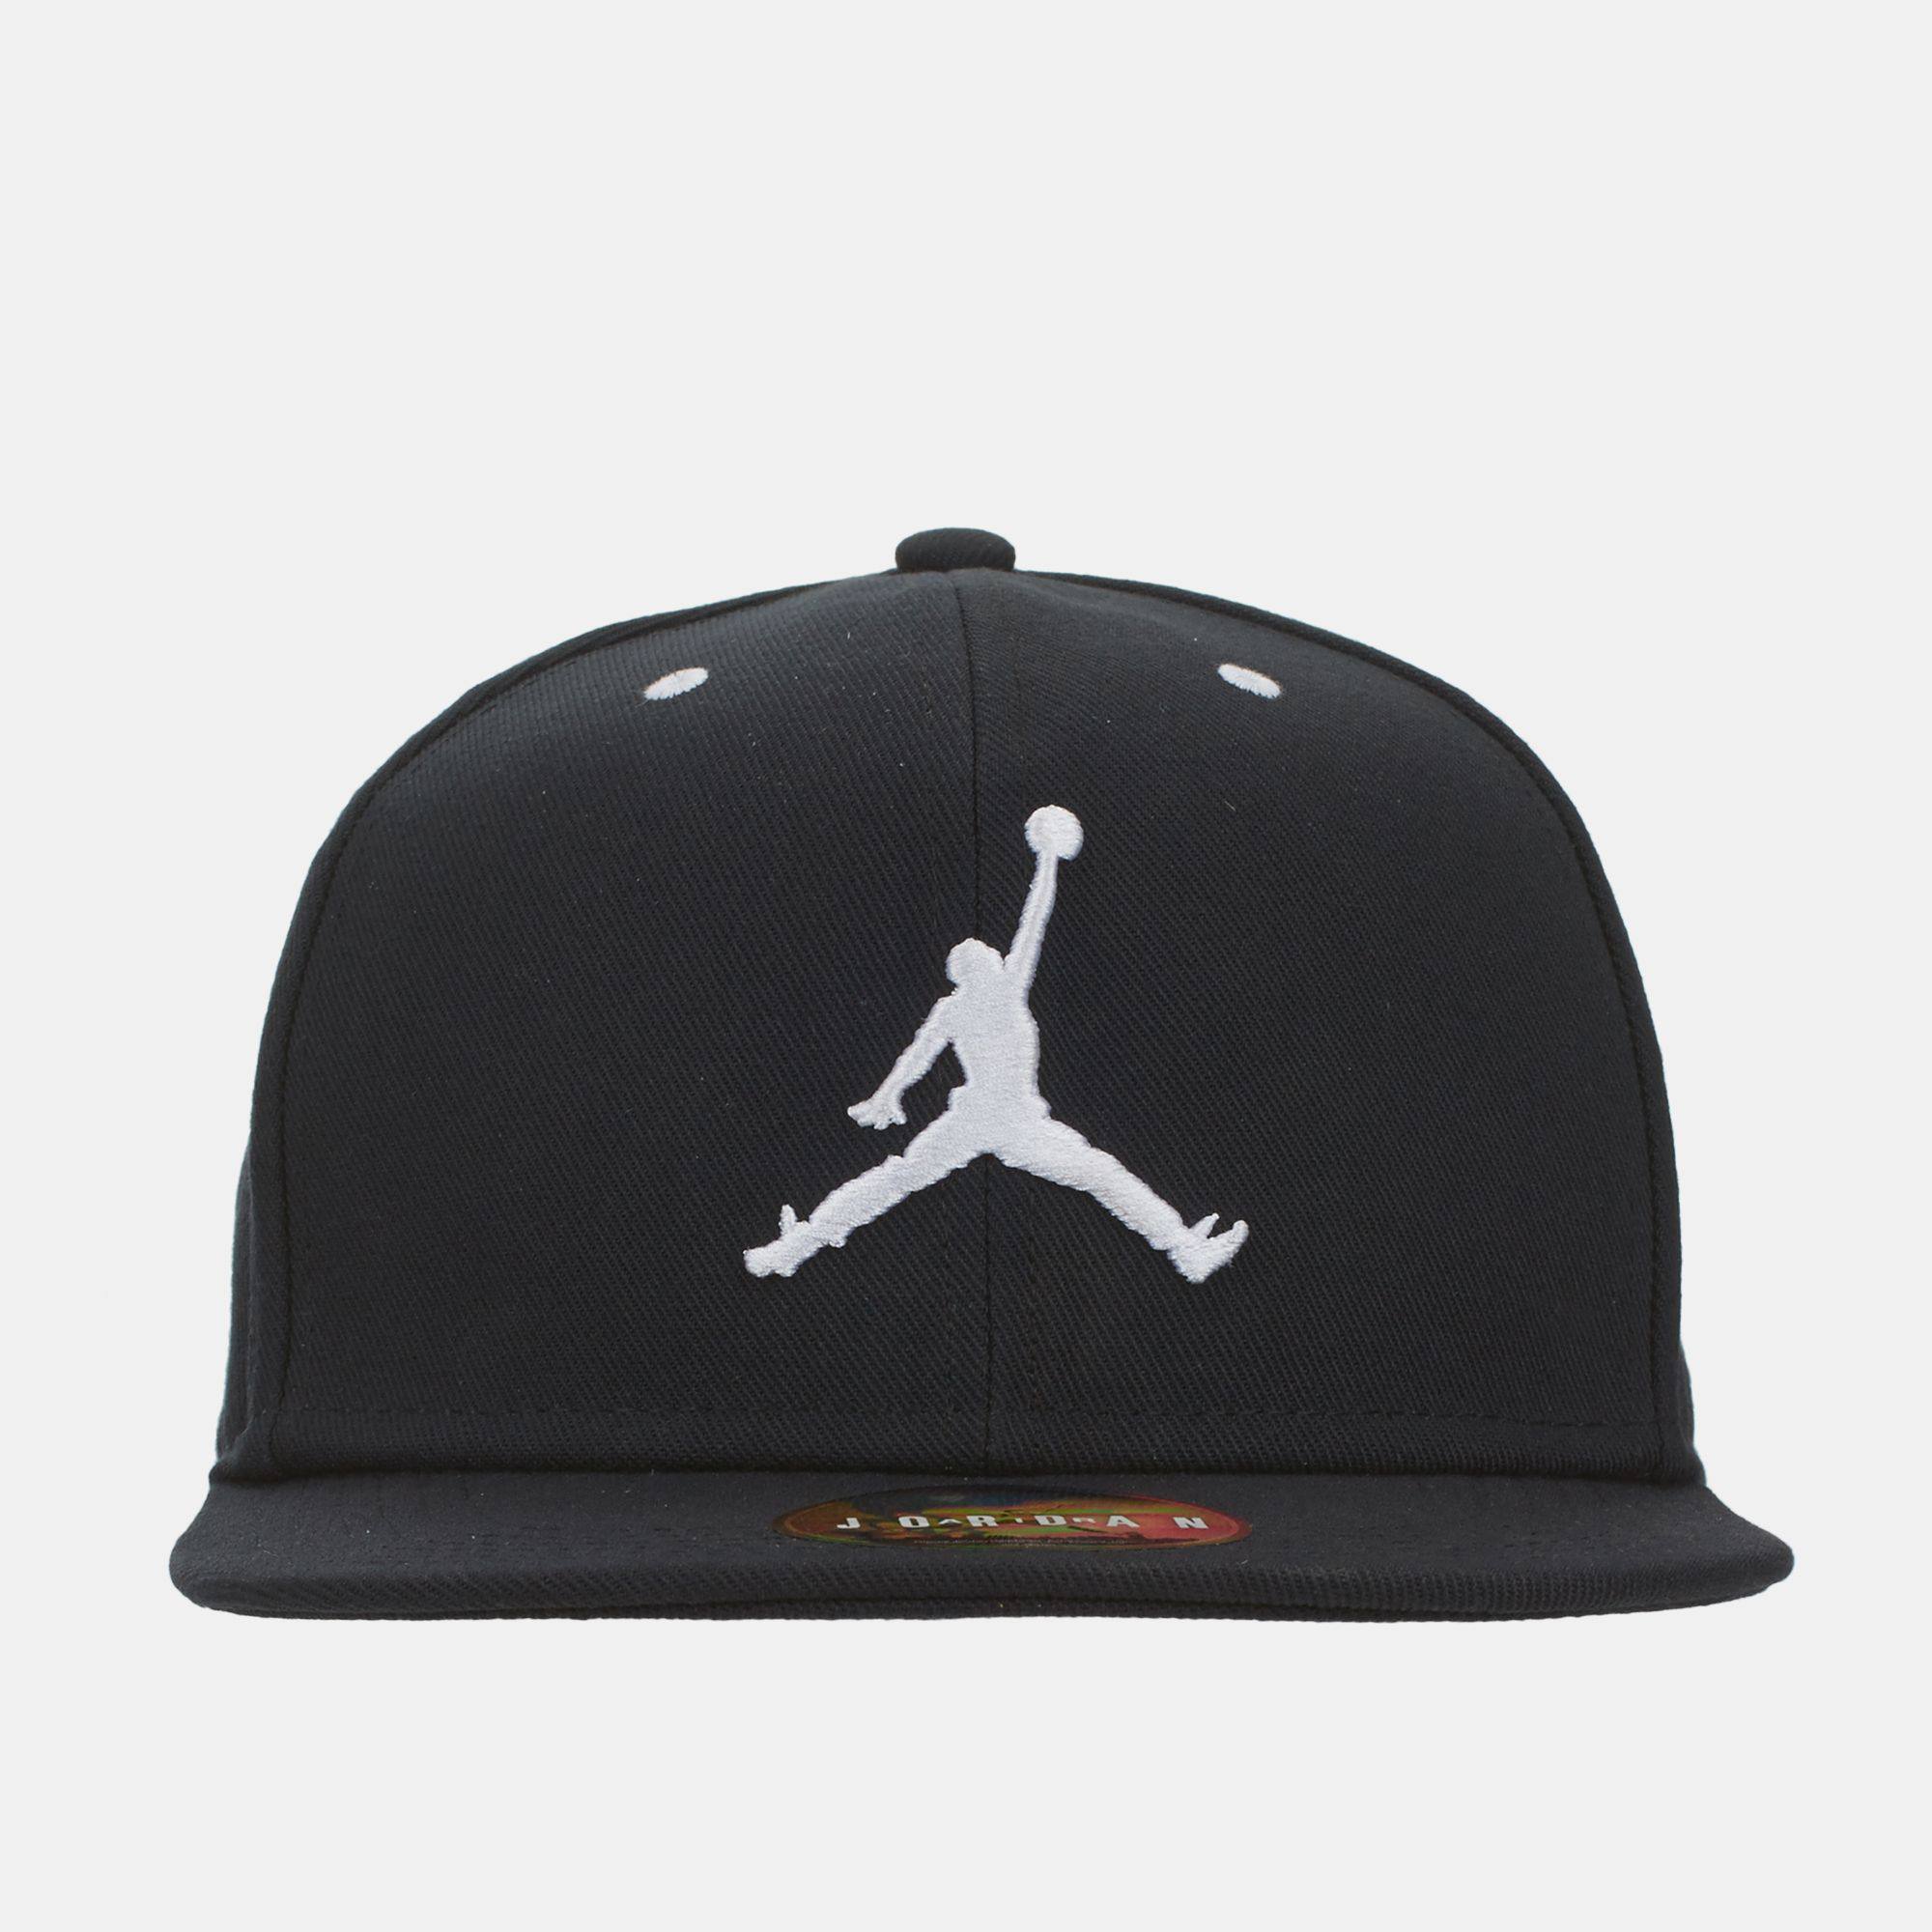 8a047cd7fc1 ... best price jordan kids jumpman snapback cap black d37bf 70a37